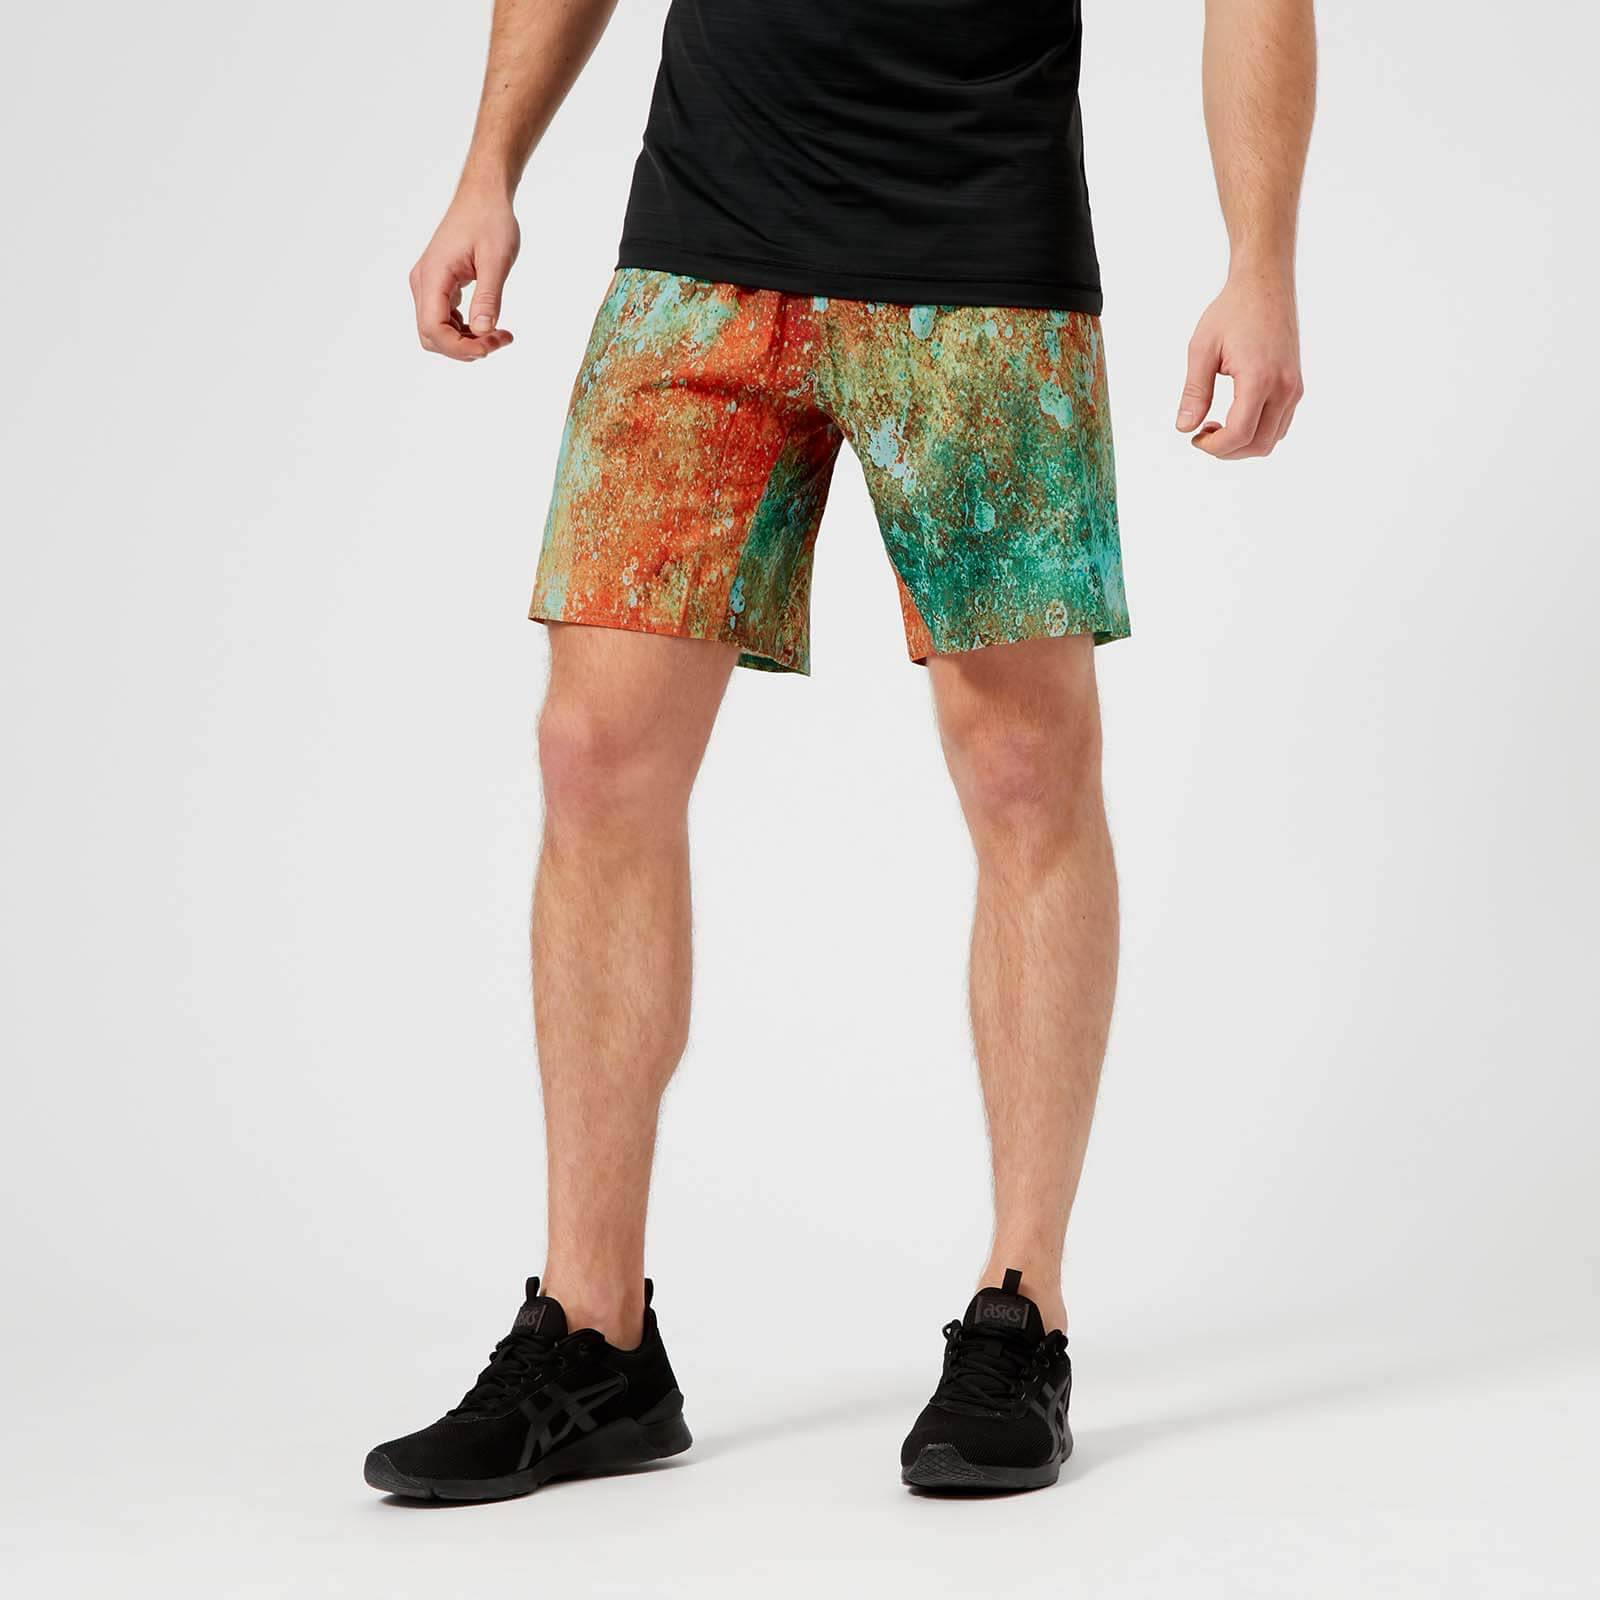 Reebok Men's CrossFit Speed Shorts - Turquoise - L - Multi